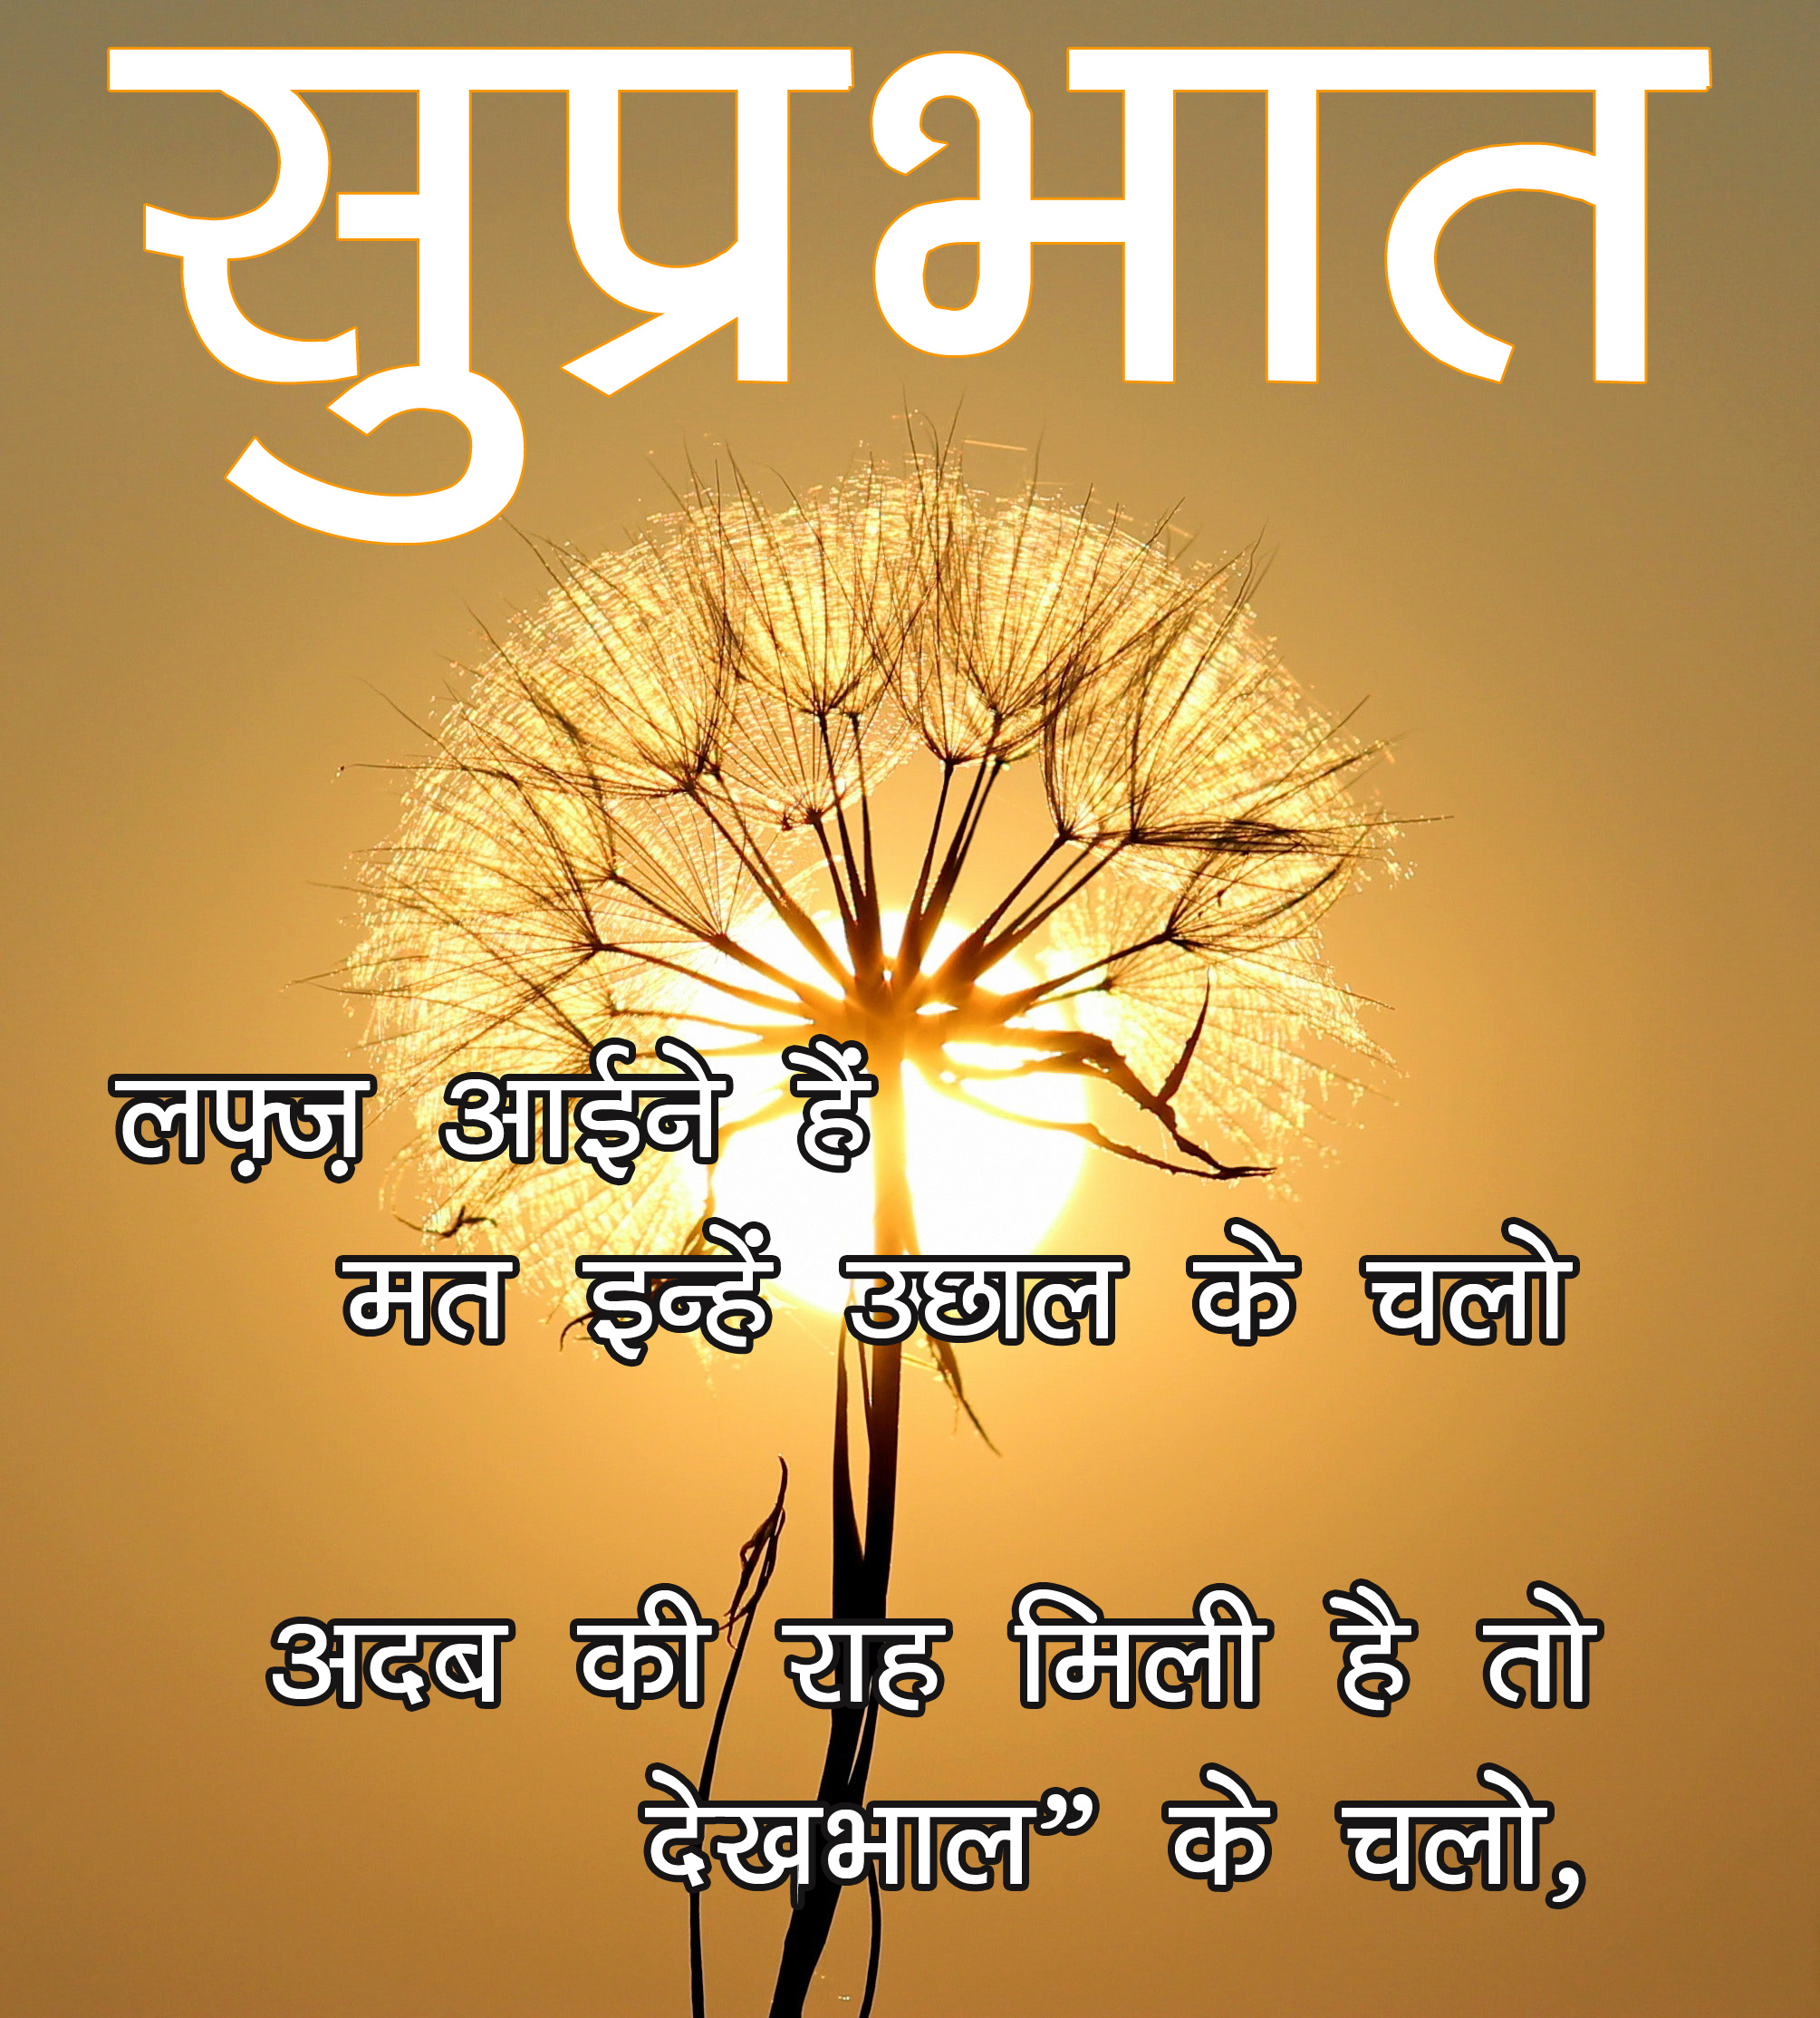 Good Morning Wallpaper With Latest Hindi Quotes